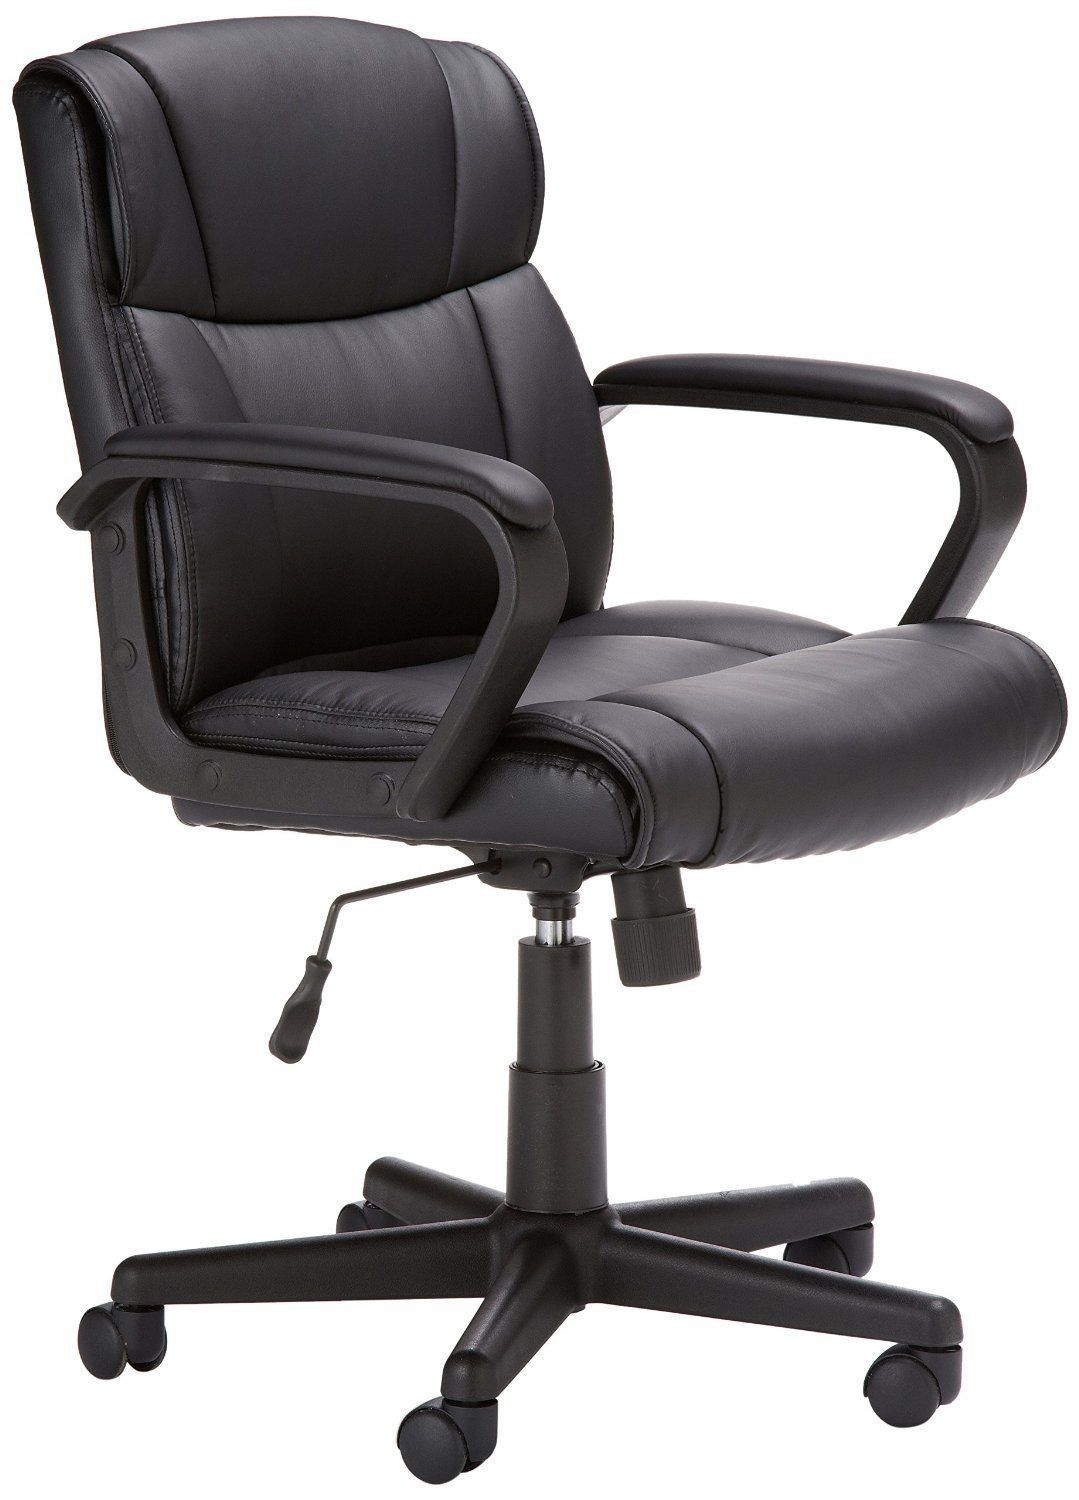 2018 Best Executive Office Chair Reviews Cool Rustic Furniture Check More At Http